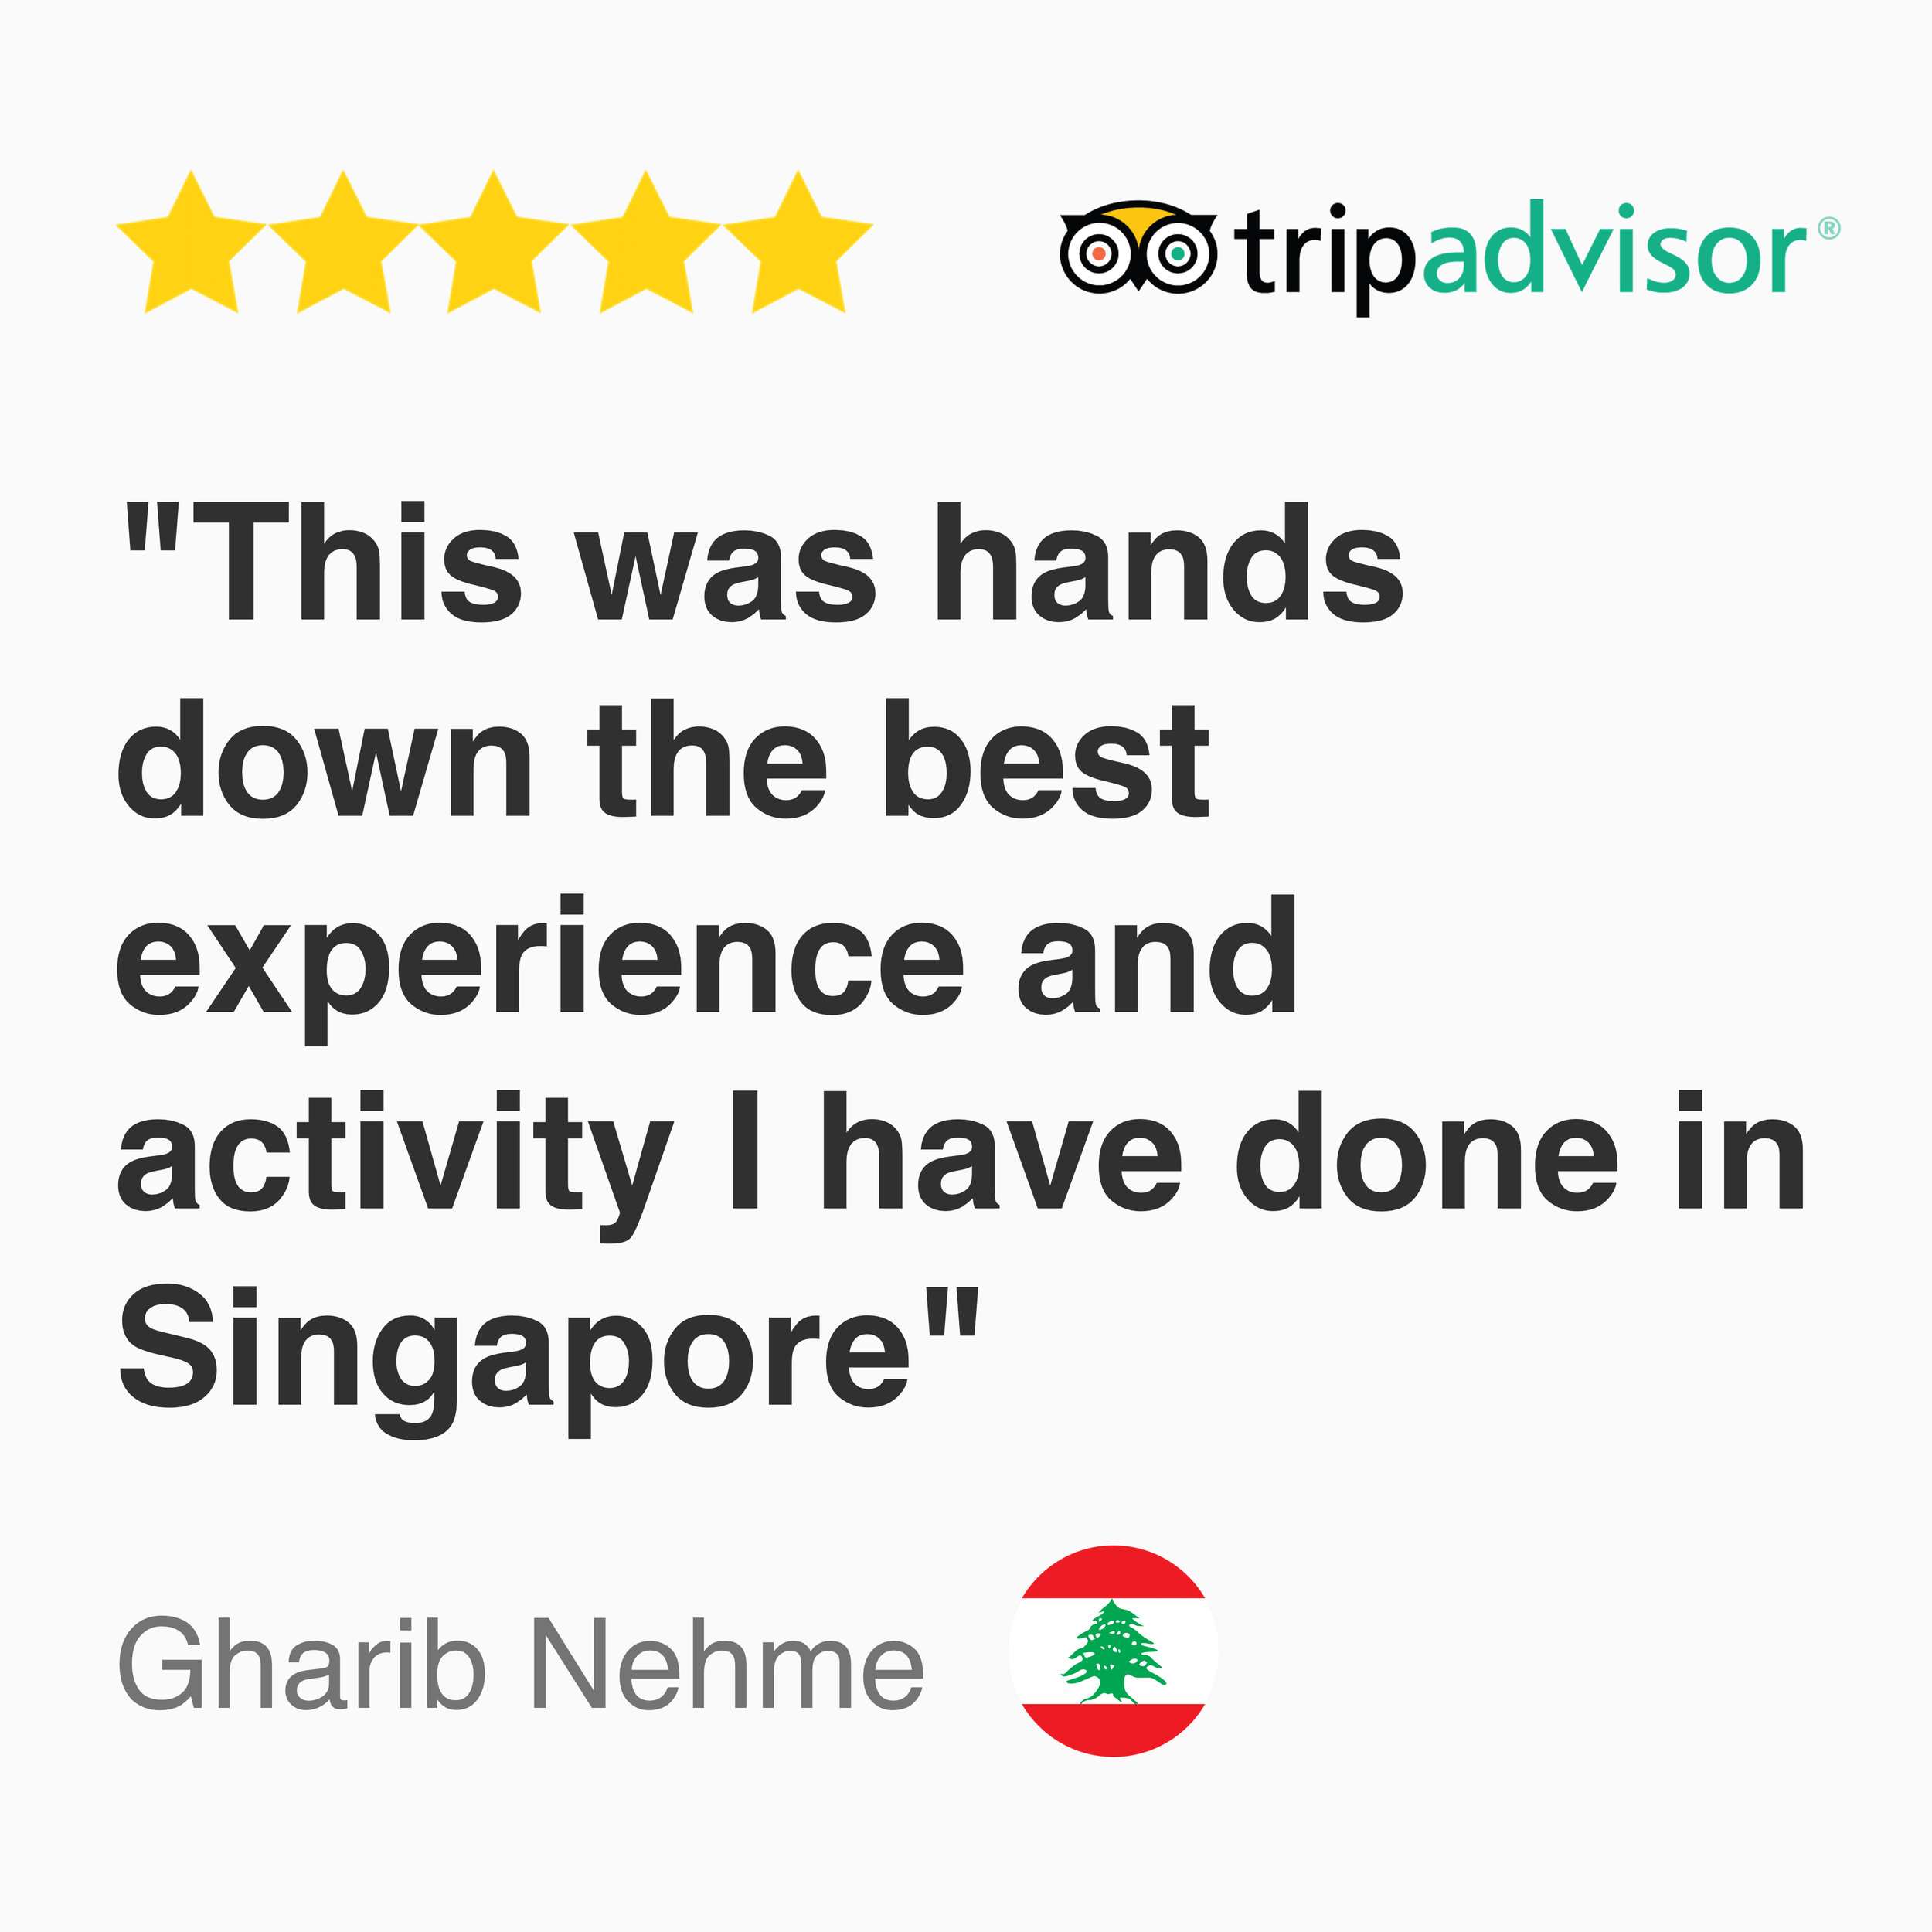 5 Star Tripadvisor Review for Kayak fishing Singapore: This was hands down the best experience and activity I have done in Singapore